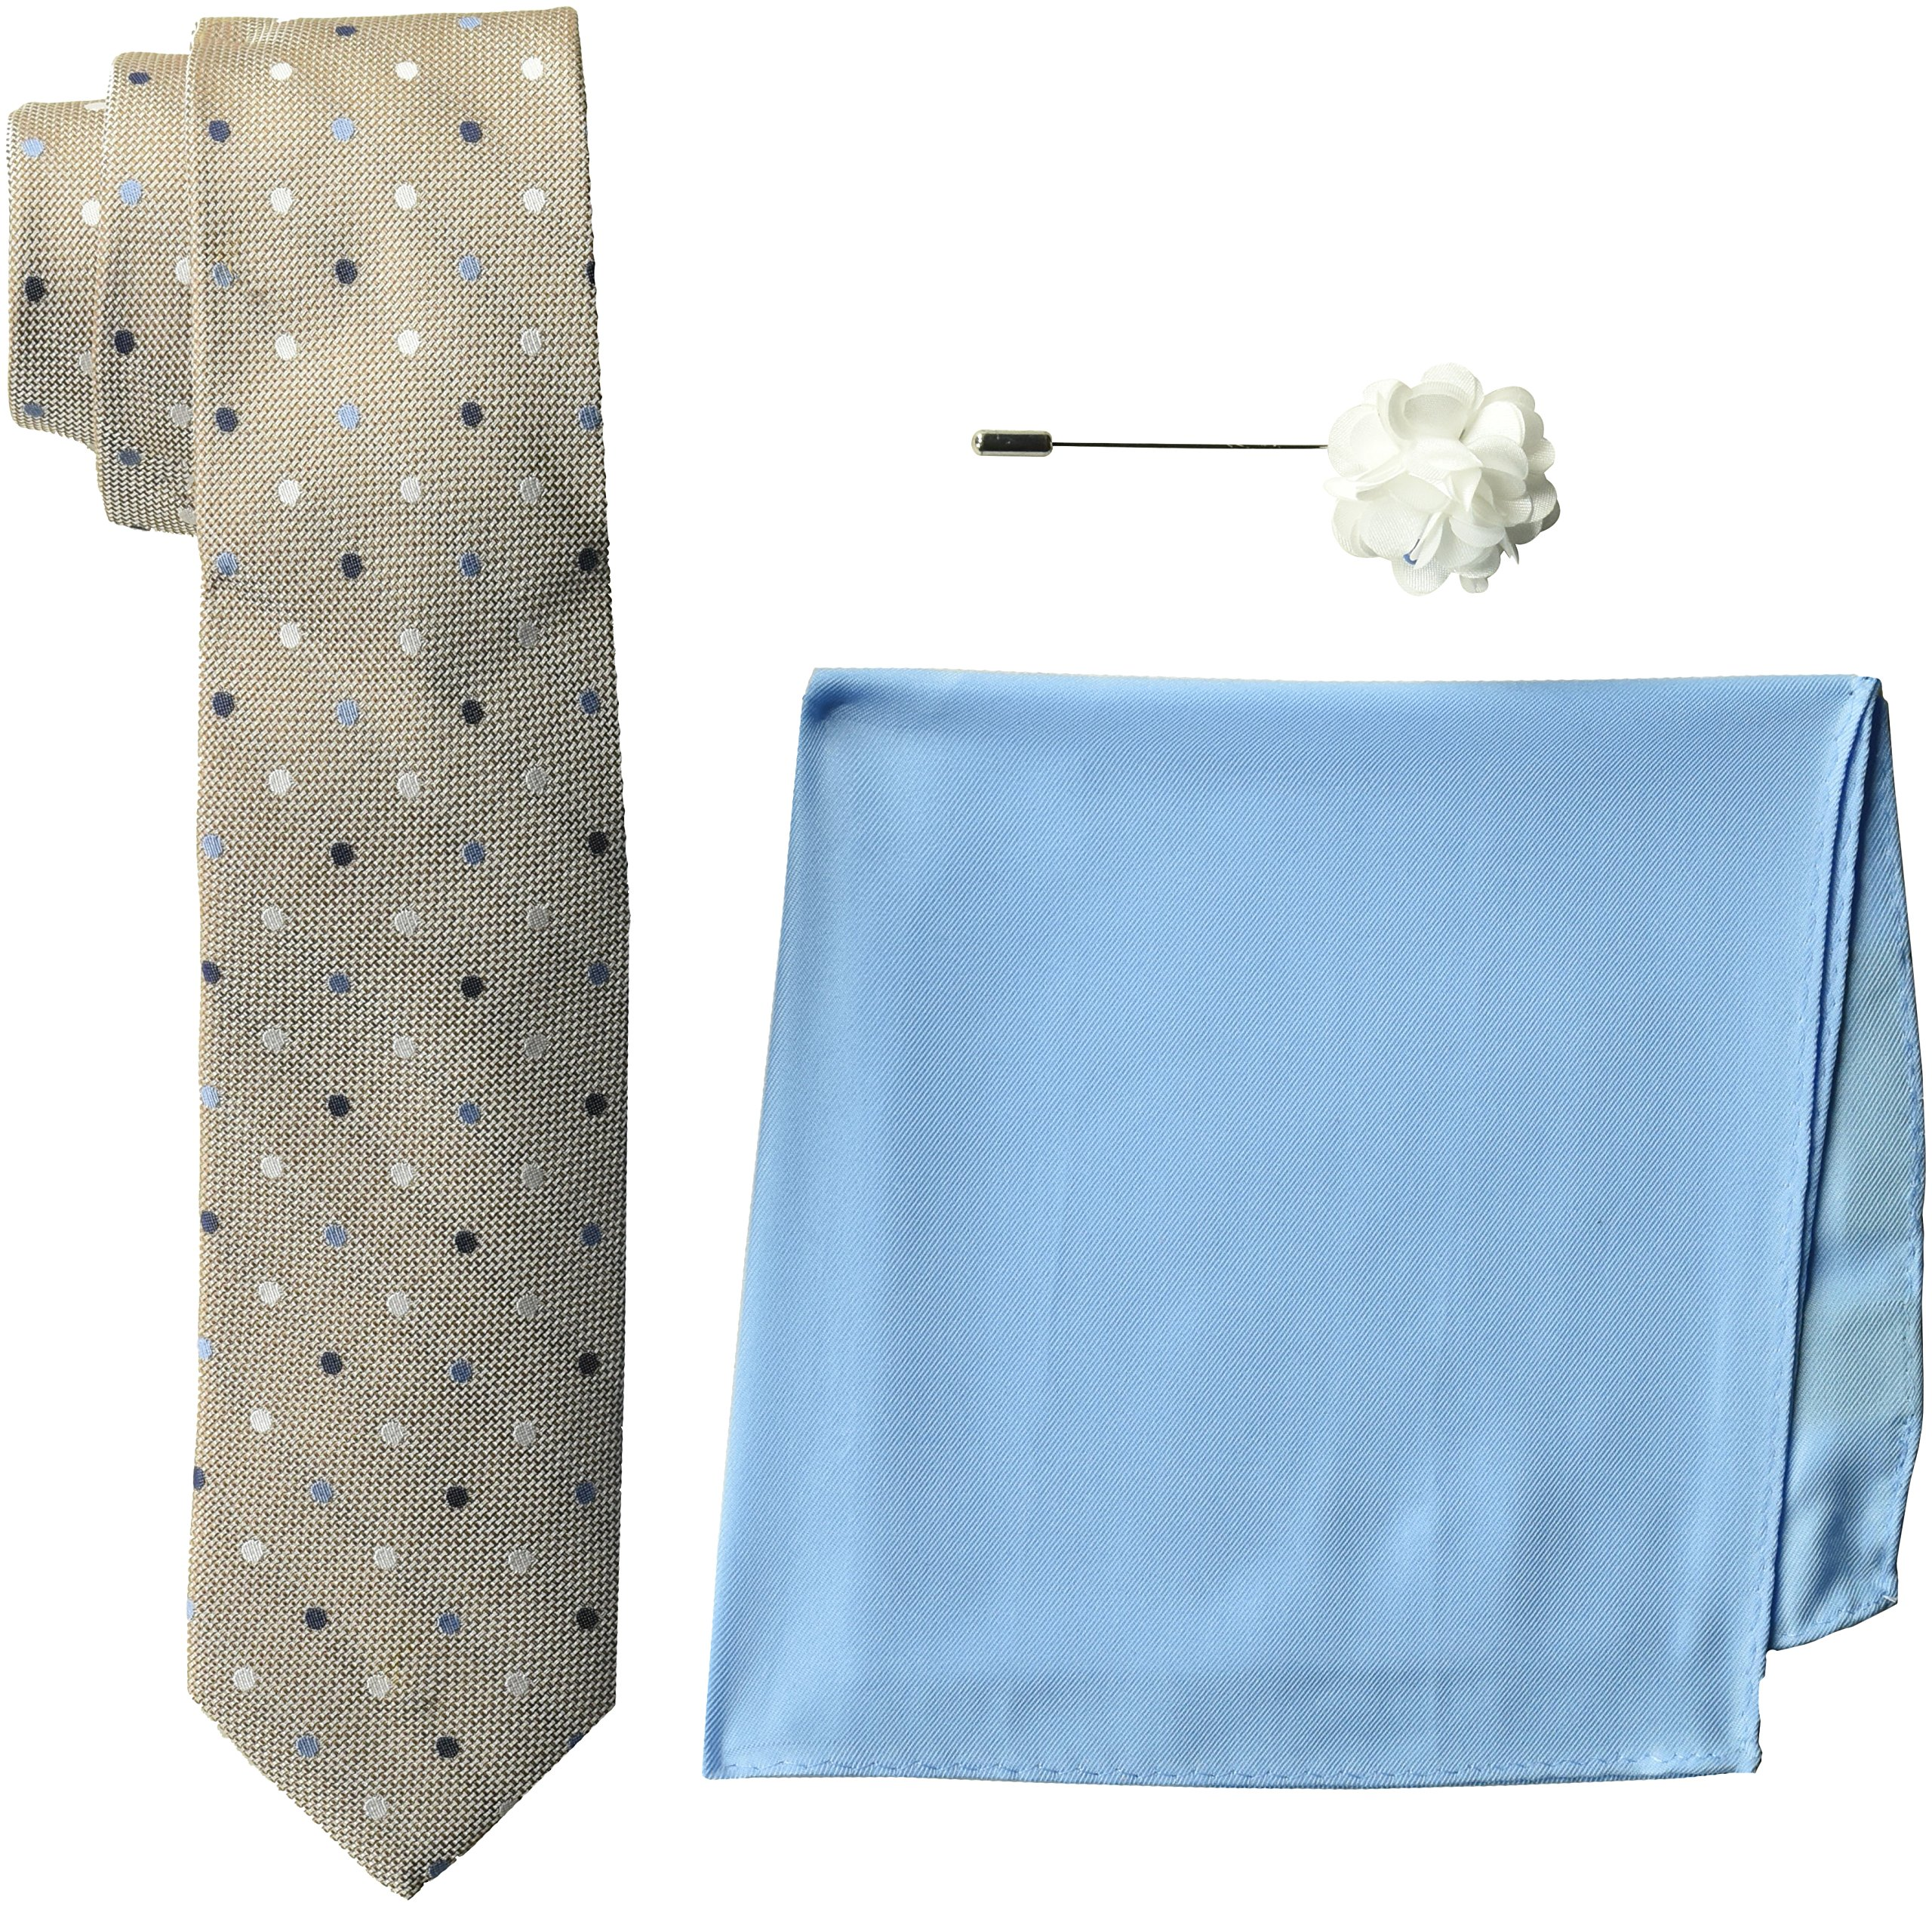 Ben Sherman Men's 100% Silk Tie with Pocket Square and Lapel Pin Gift Set, Taupe, One Size